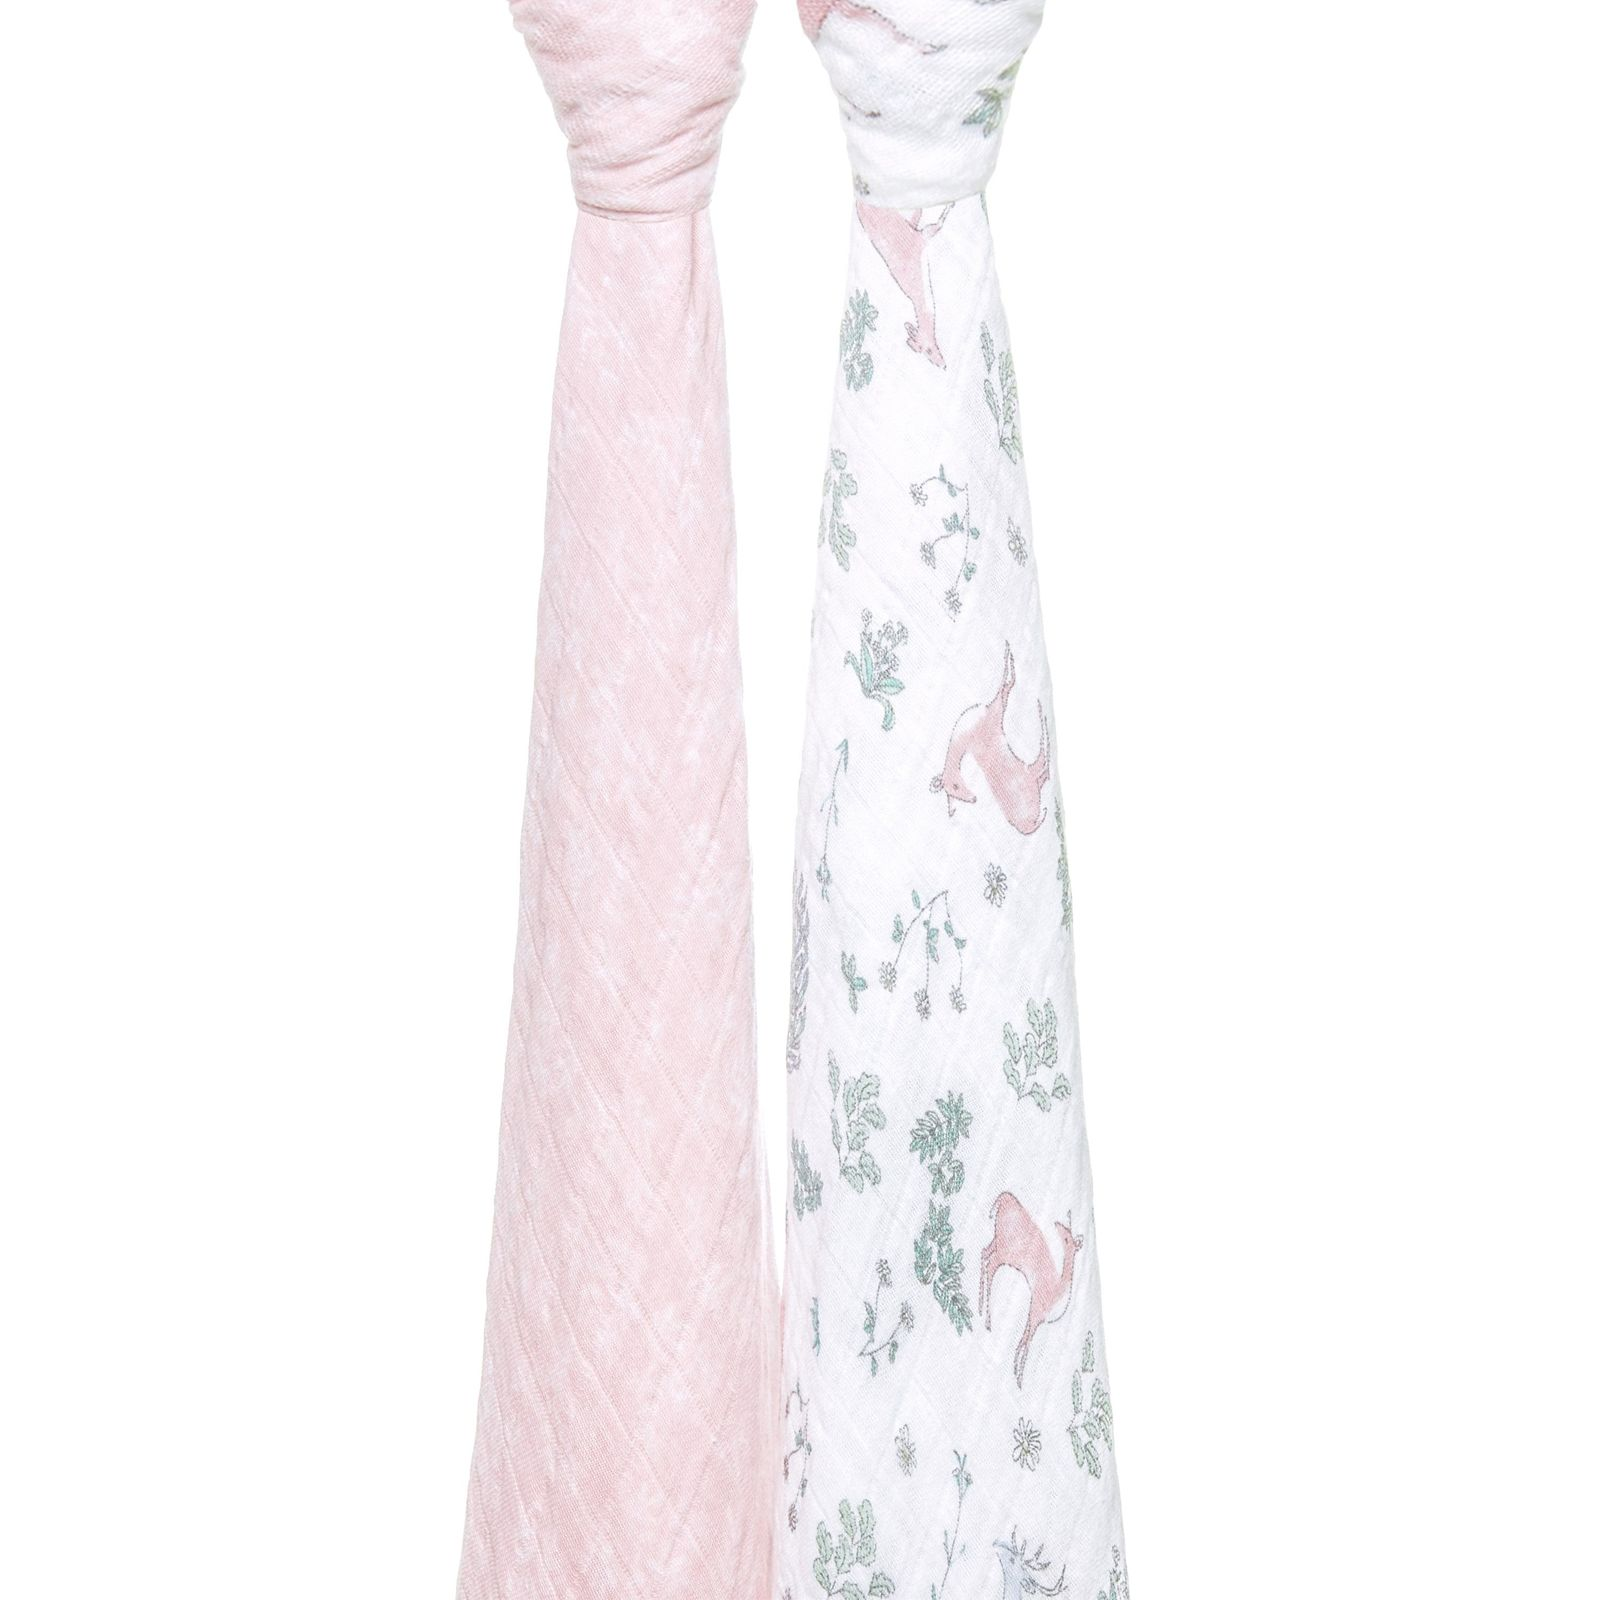 Aden + Anais: Classic Swaddle - Forest Fantasy (2 Pack) image